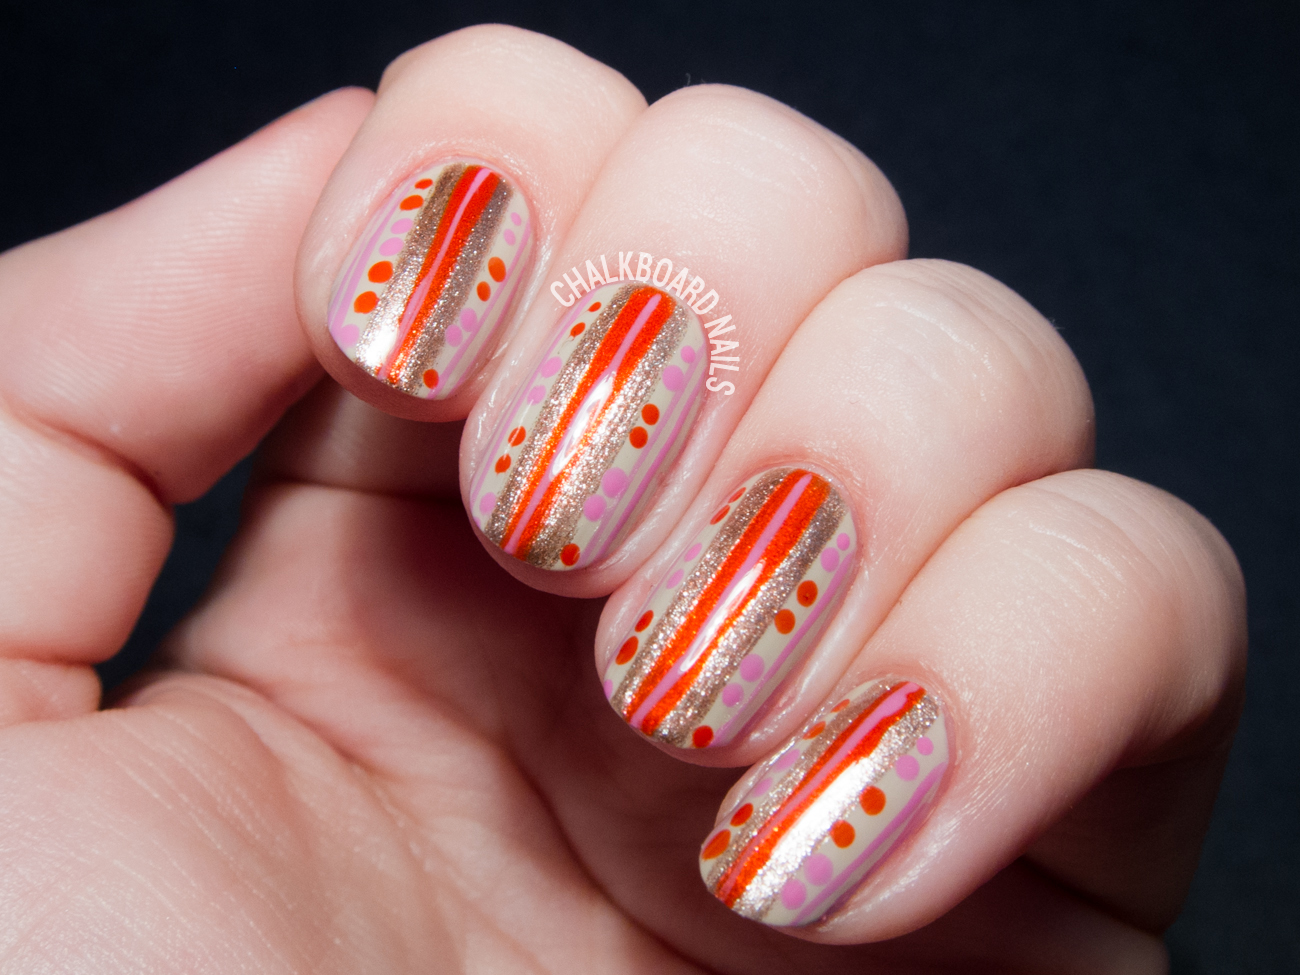 Easy vintage wallpaper nail art by @chalkboardnails